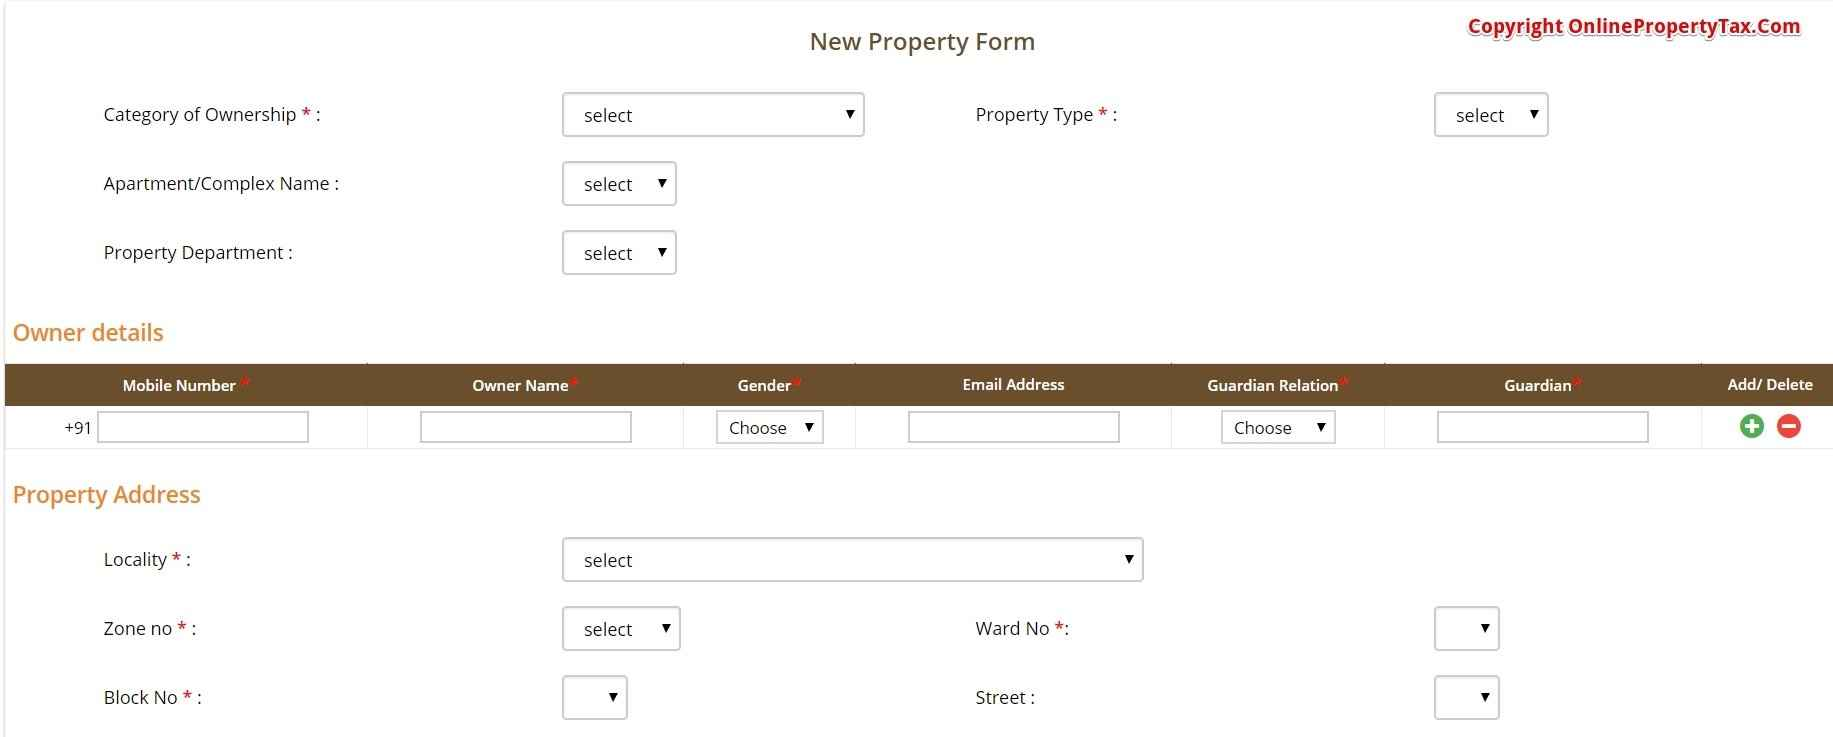 NEW PROPERTY FORM